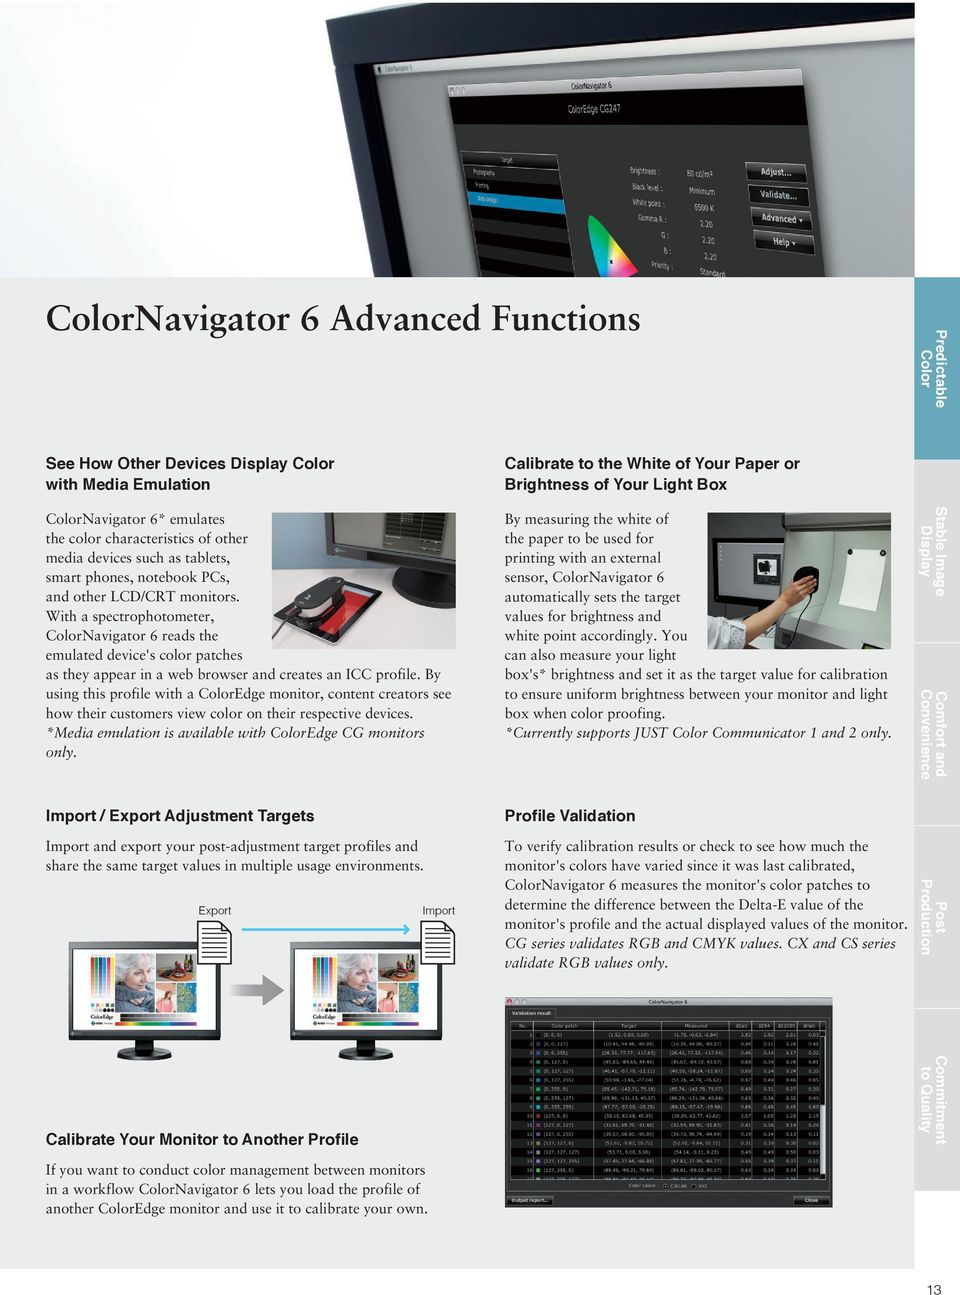 With a spectrophotometer, ColorNavigator 6 reads the emulated device's color patches as they appear in a web browser and creates an ICC profile.